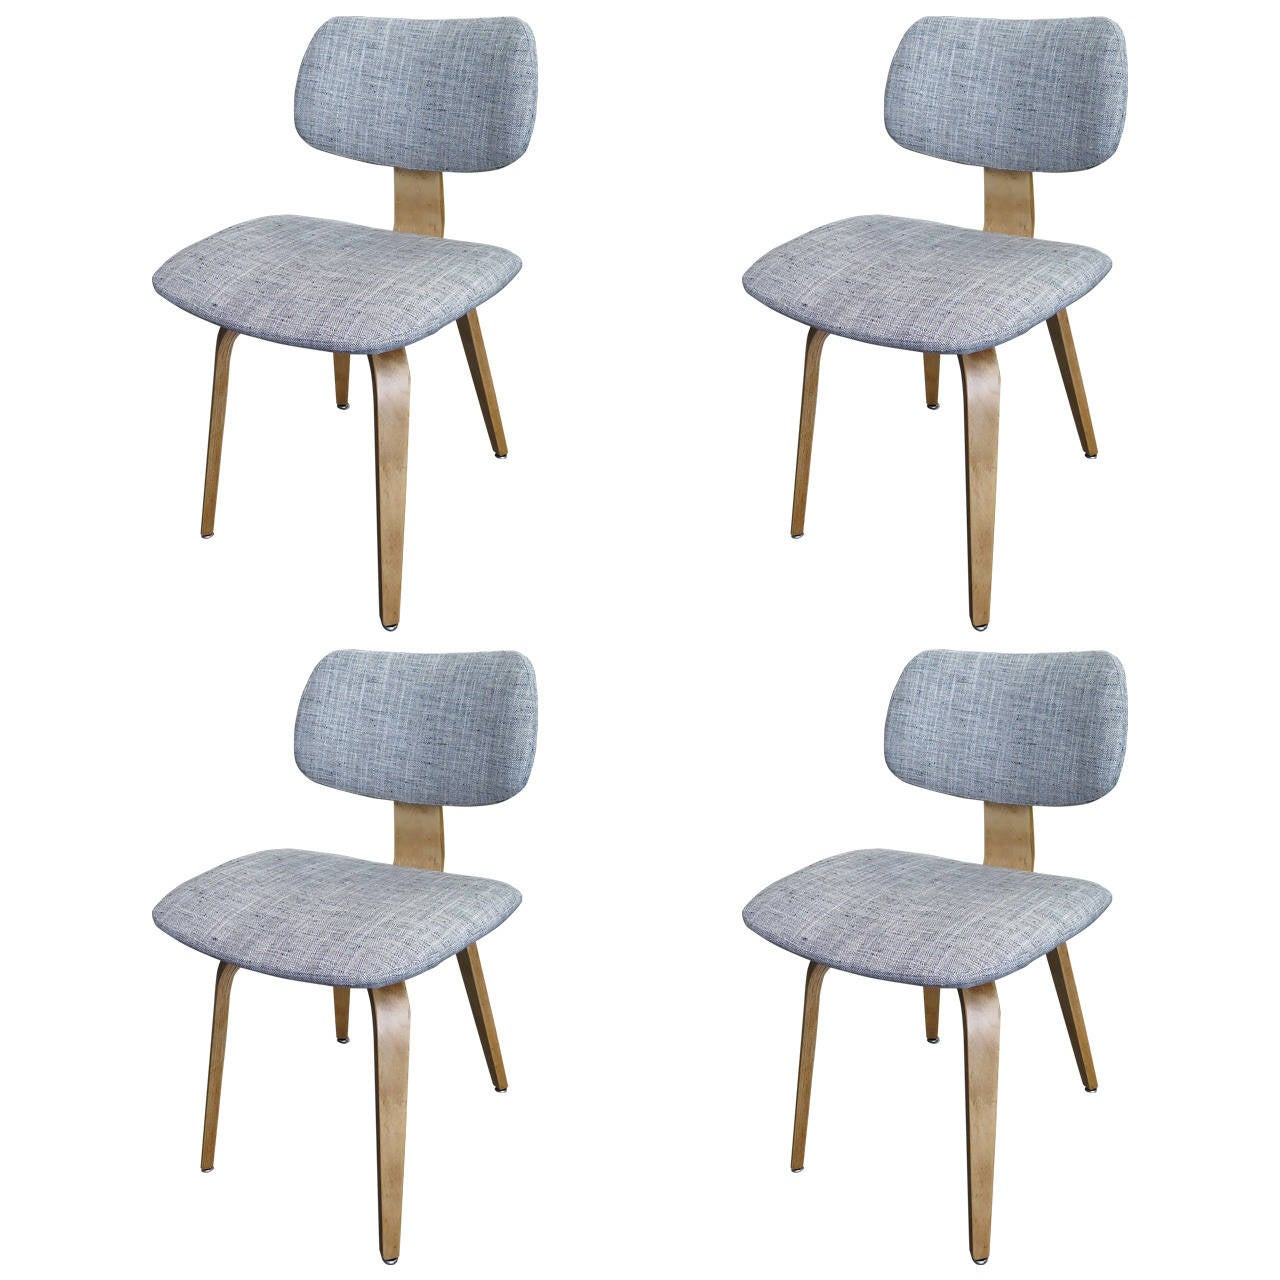 1950 set of four thonet plywood chairs at 1stdibs